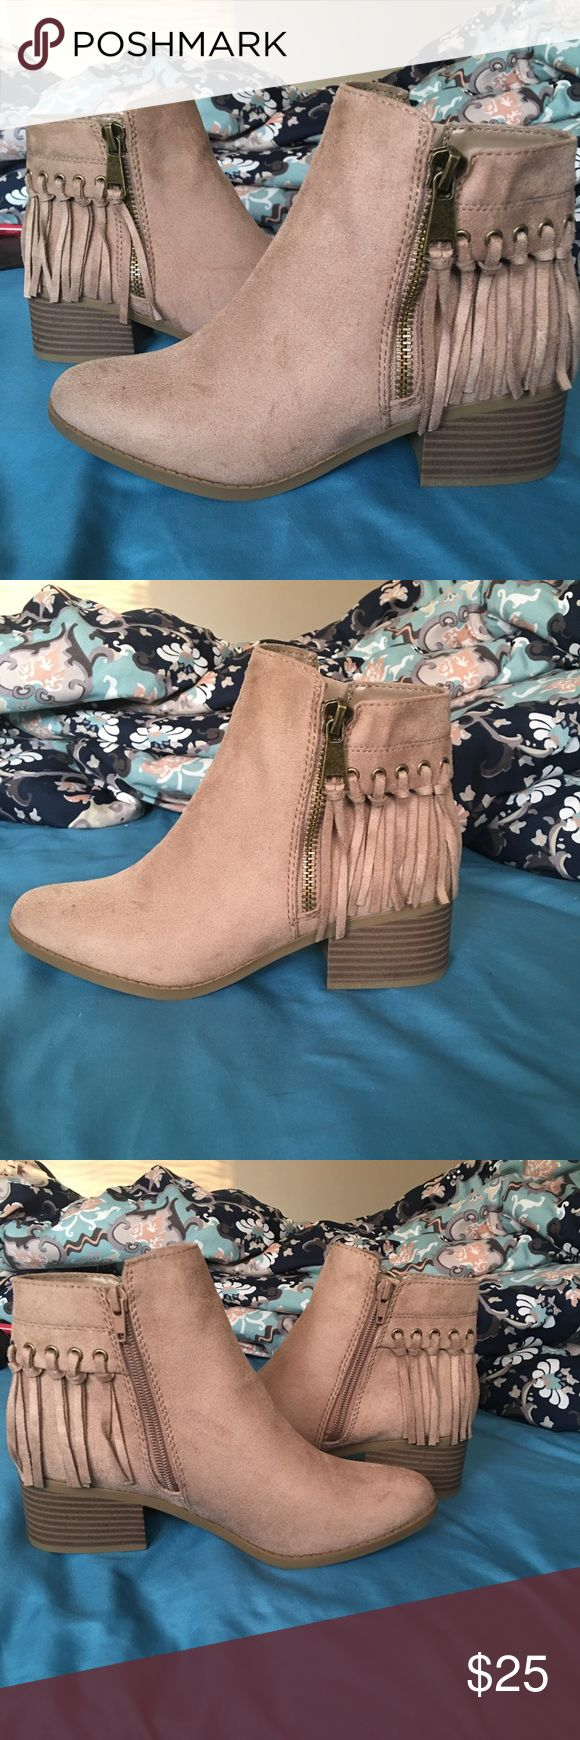 Taupe Faux Suede Booties! (Size 8) Never worn Brand new! Never worn before booties! Perfect for fall! They are faux suede and have zippers on both sides! It's a Taupe/light grey color! They are size  8 1/2 but they run 1/2 smaller in my opinion so they will fit perfectly! I wear size 8!  Brand is classified! Shoes Ankle Boots & Booties